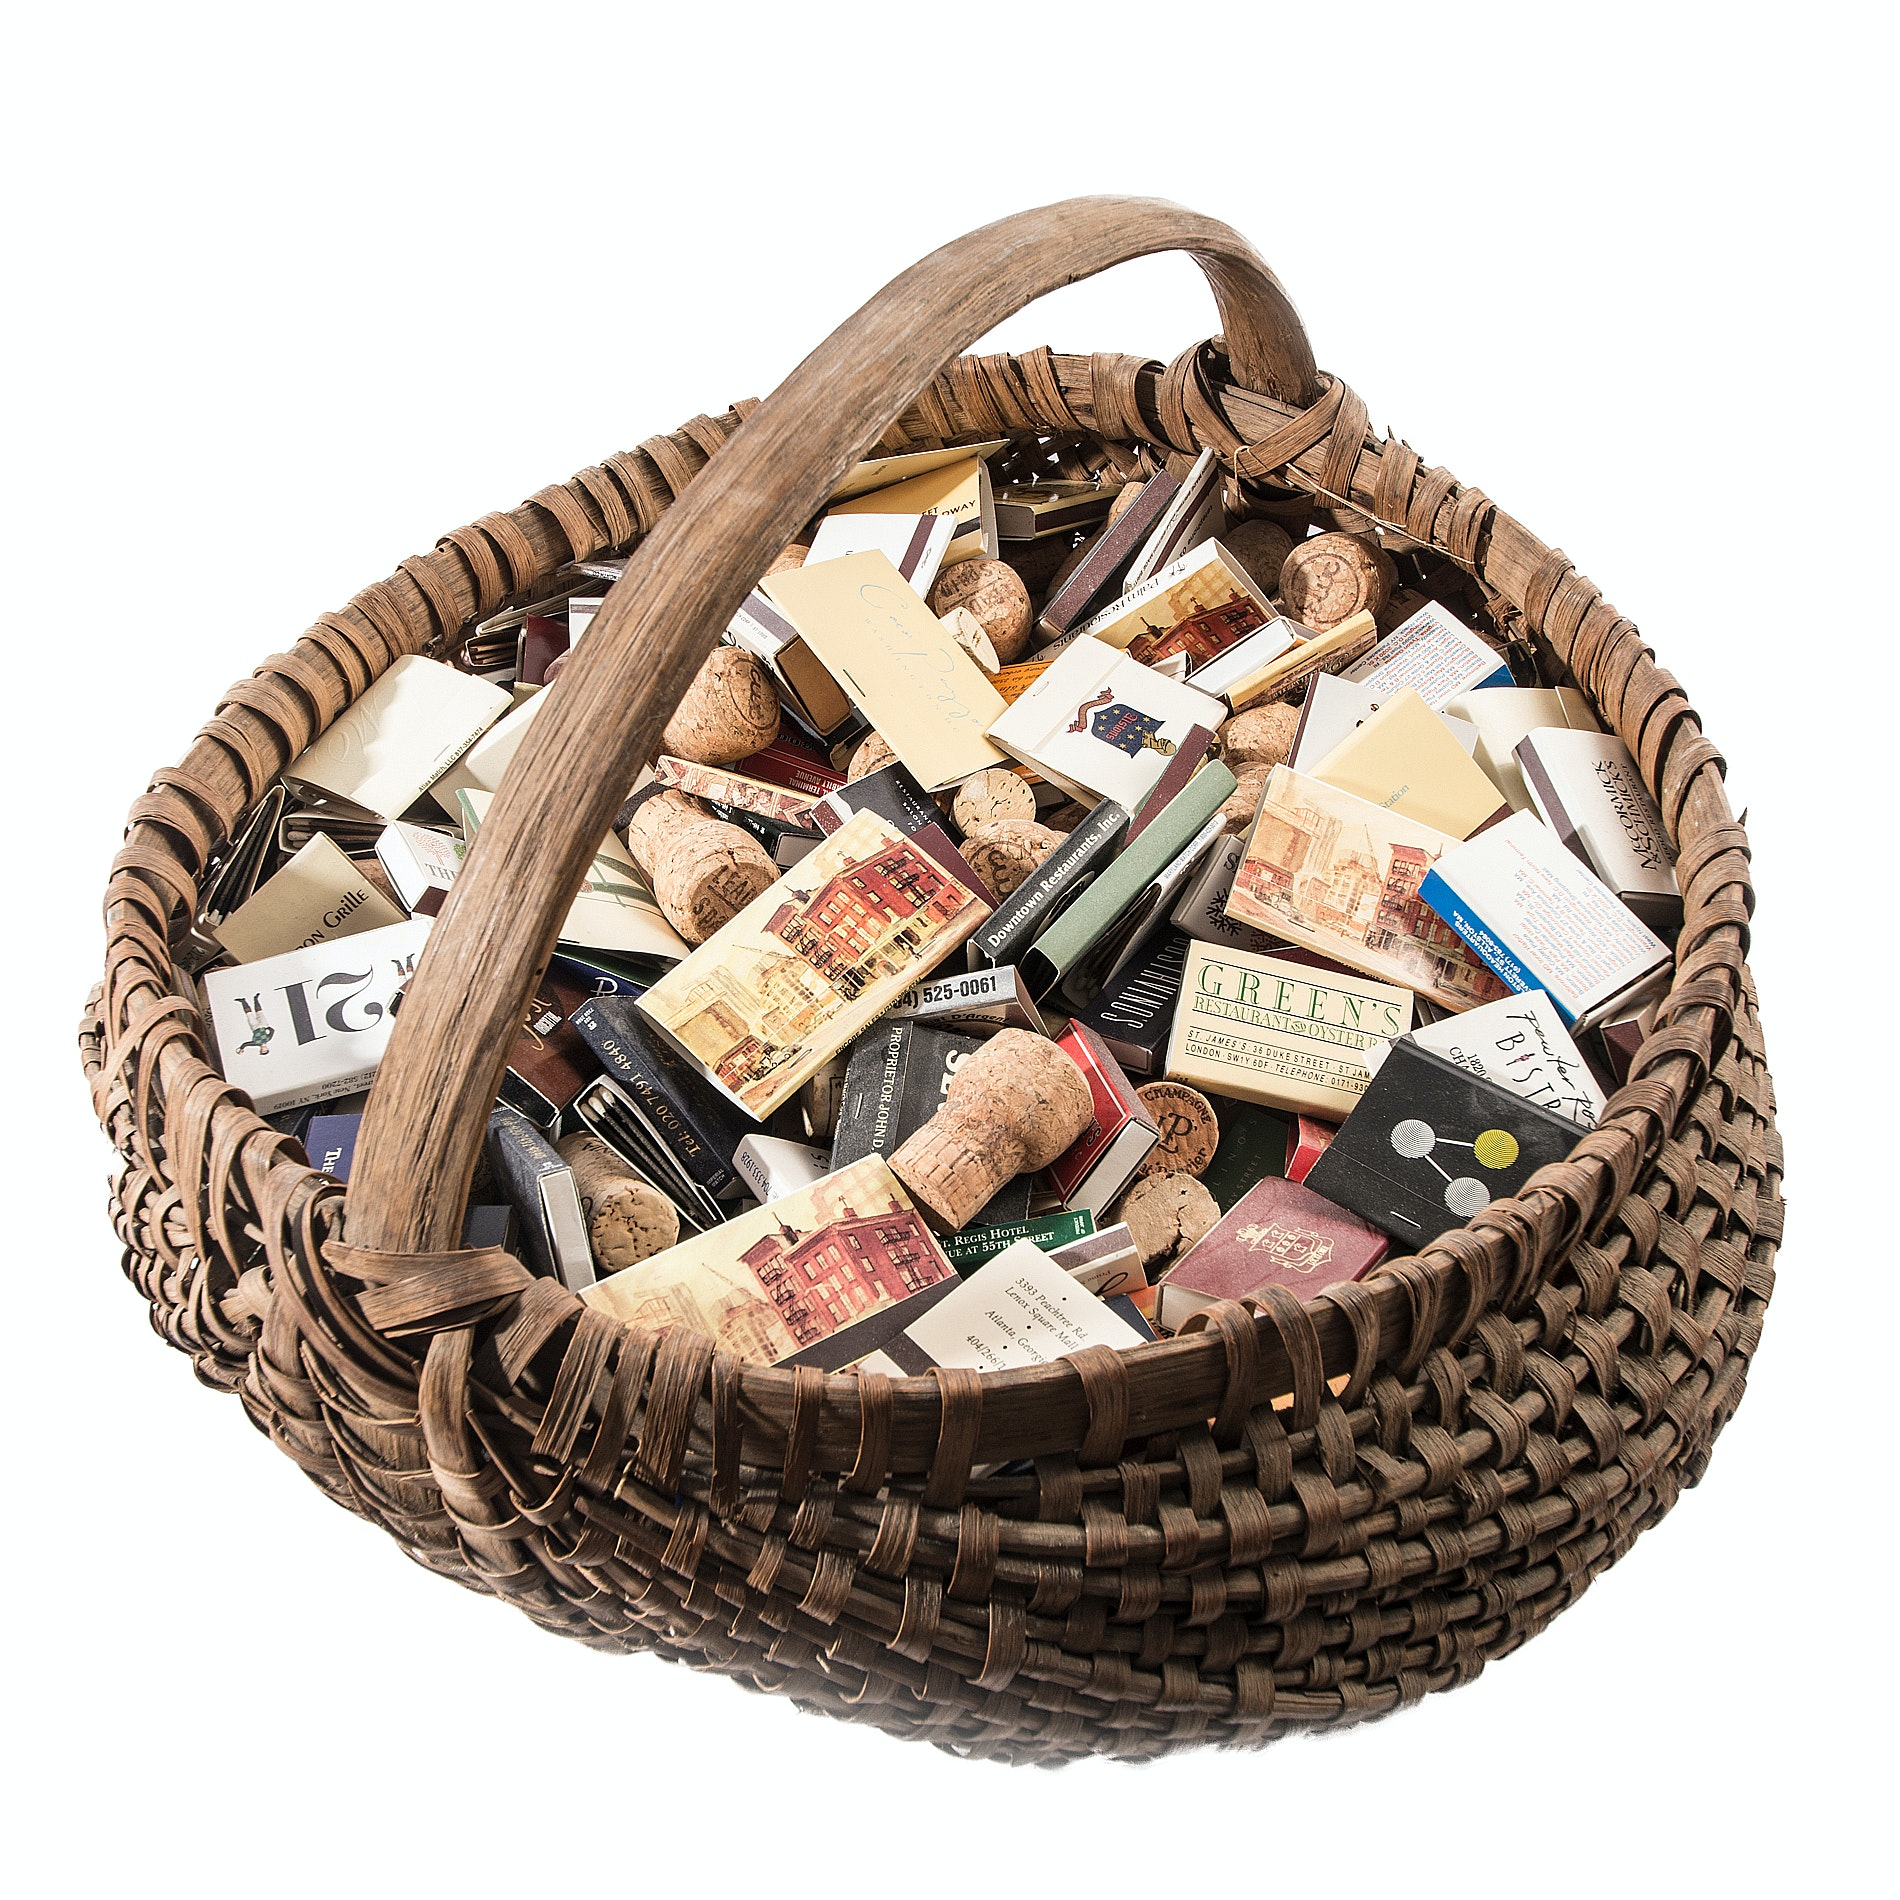 Generous Collection of Matchbooks and Wine Corks